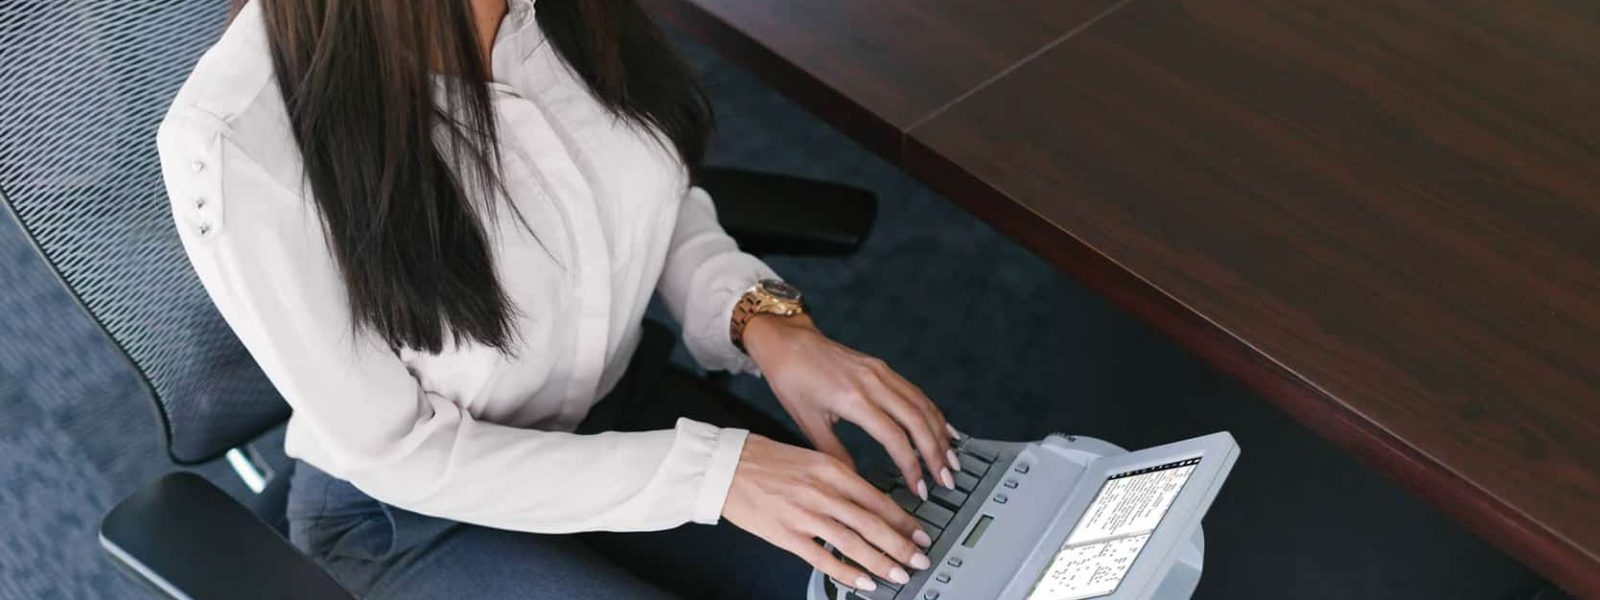 Houston Court Reporters With Over 25 Years of Experience